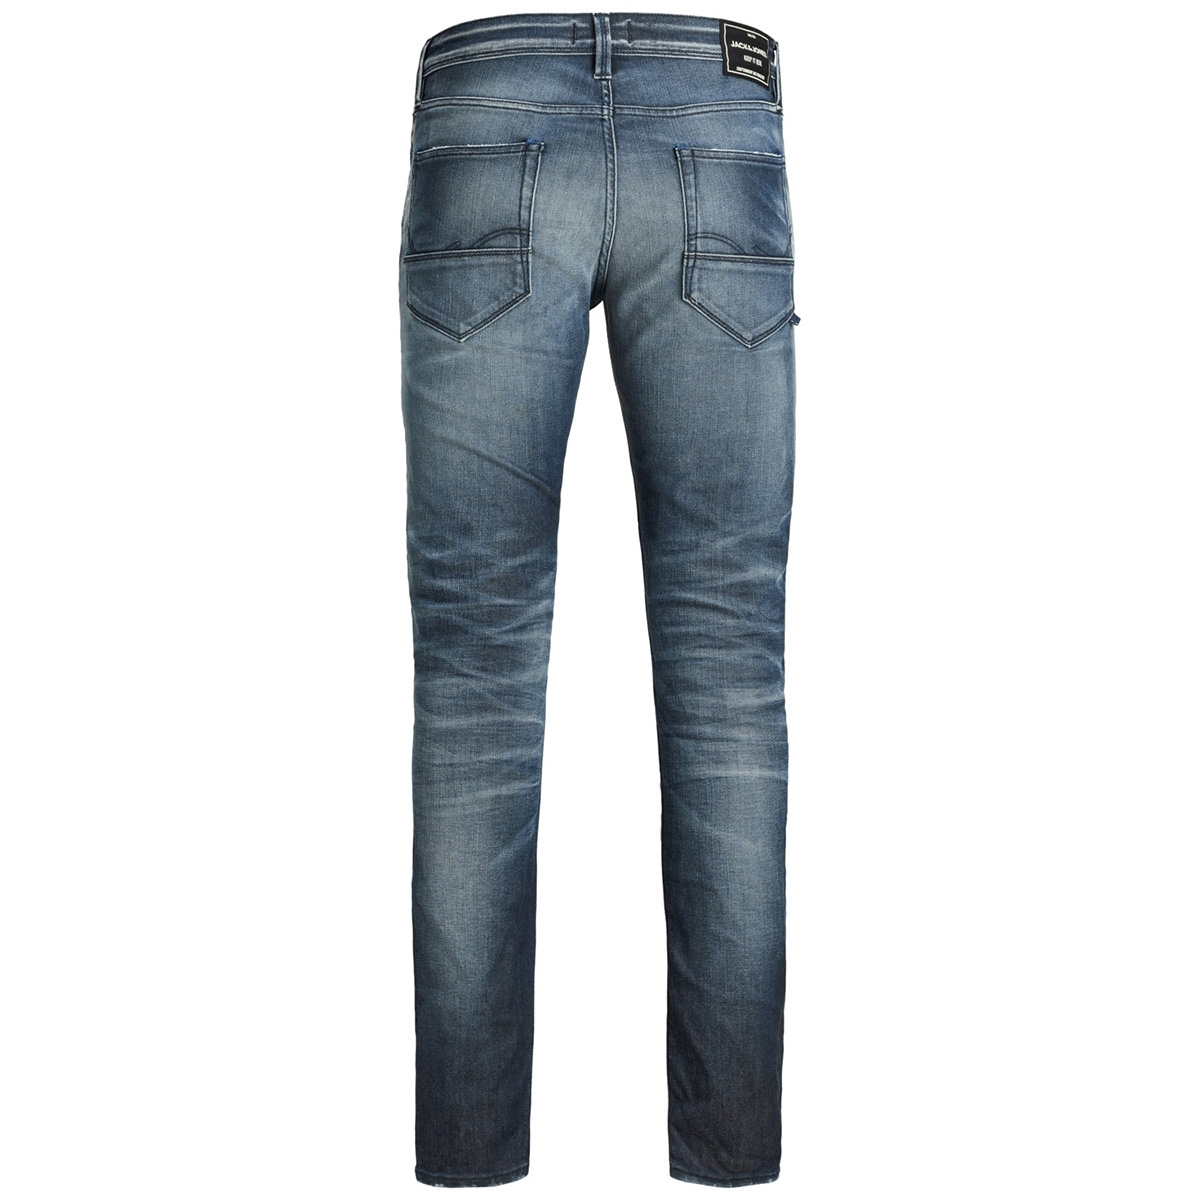 jjiglenn jjfox bl 881 noos 12159182 jack & jones jeans blue denim